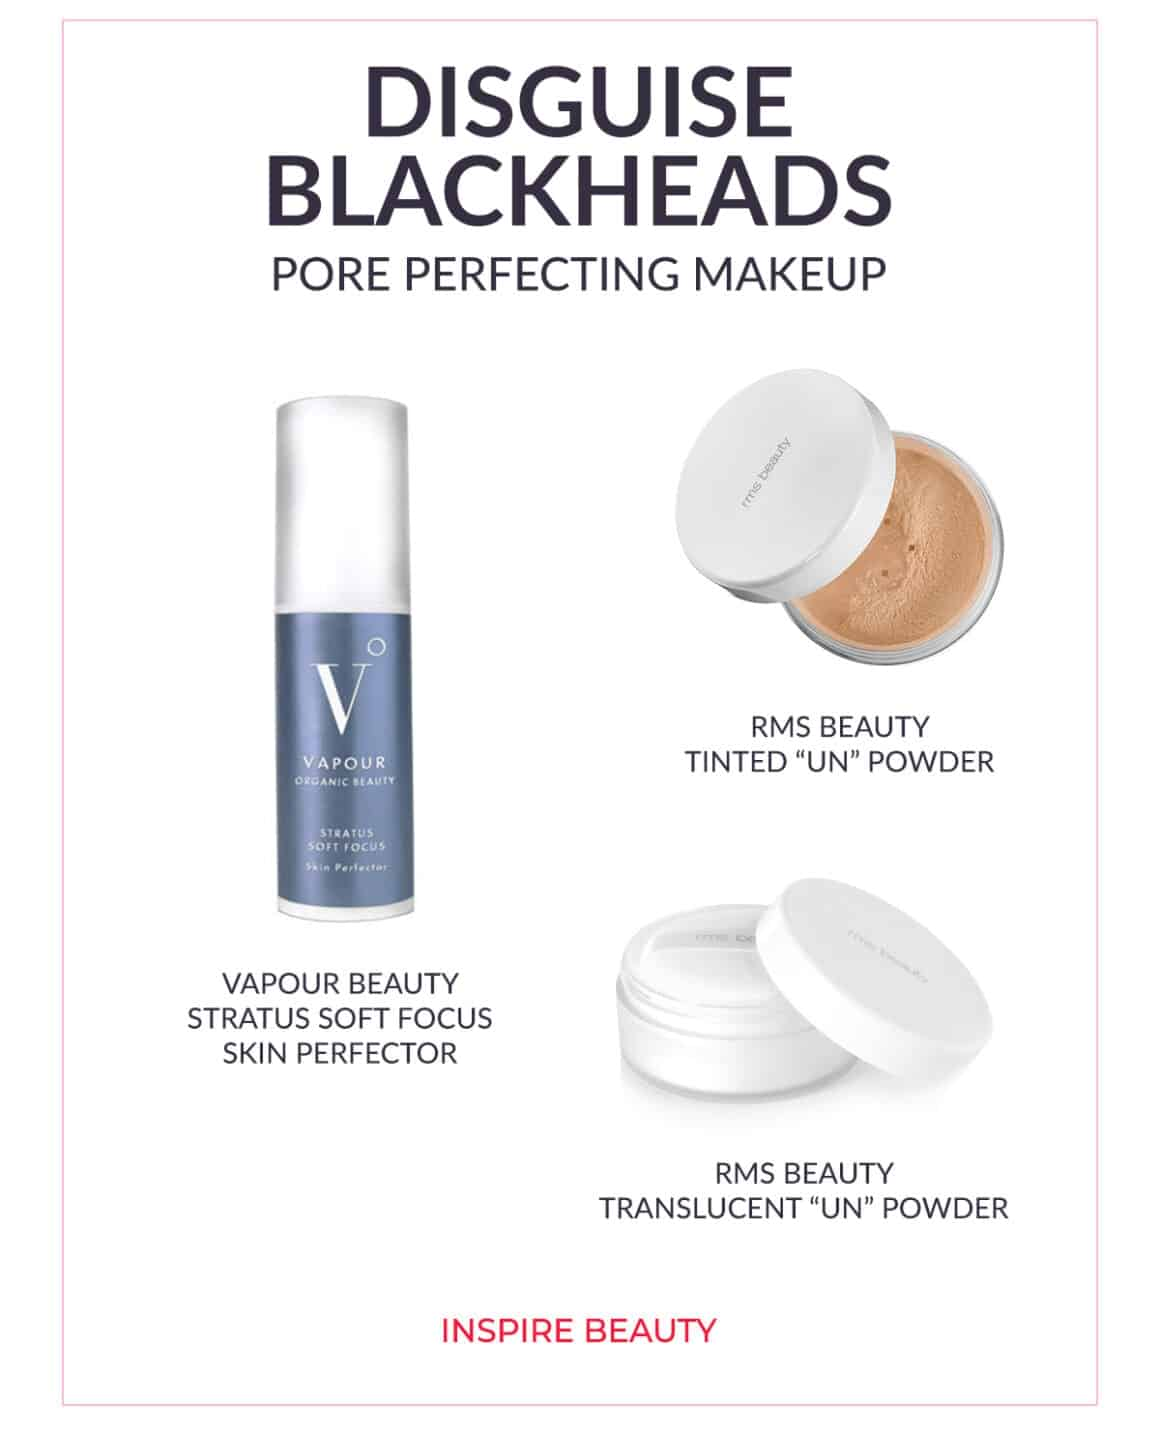 Recommended products from Vapour Organic Beauty and RMS Beauty to make skin appear poreless and disguise blackheads.